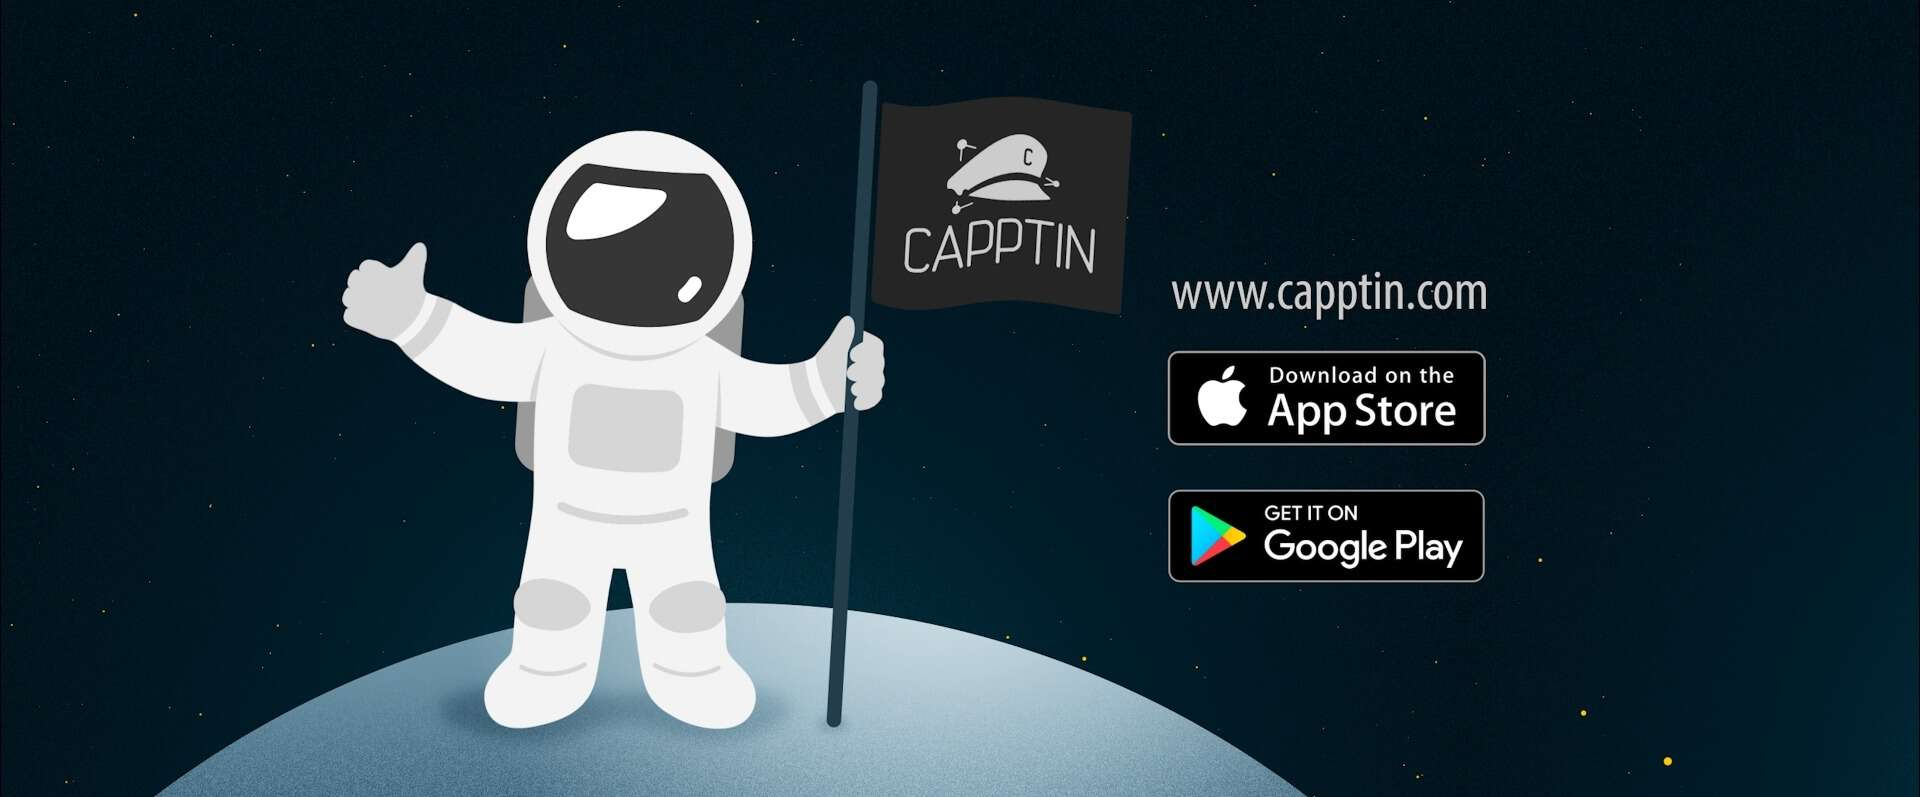 A New Rideshare Company Is Making Some Noise And The Name Is Capptin